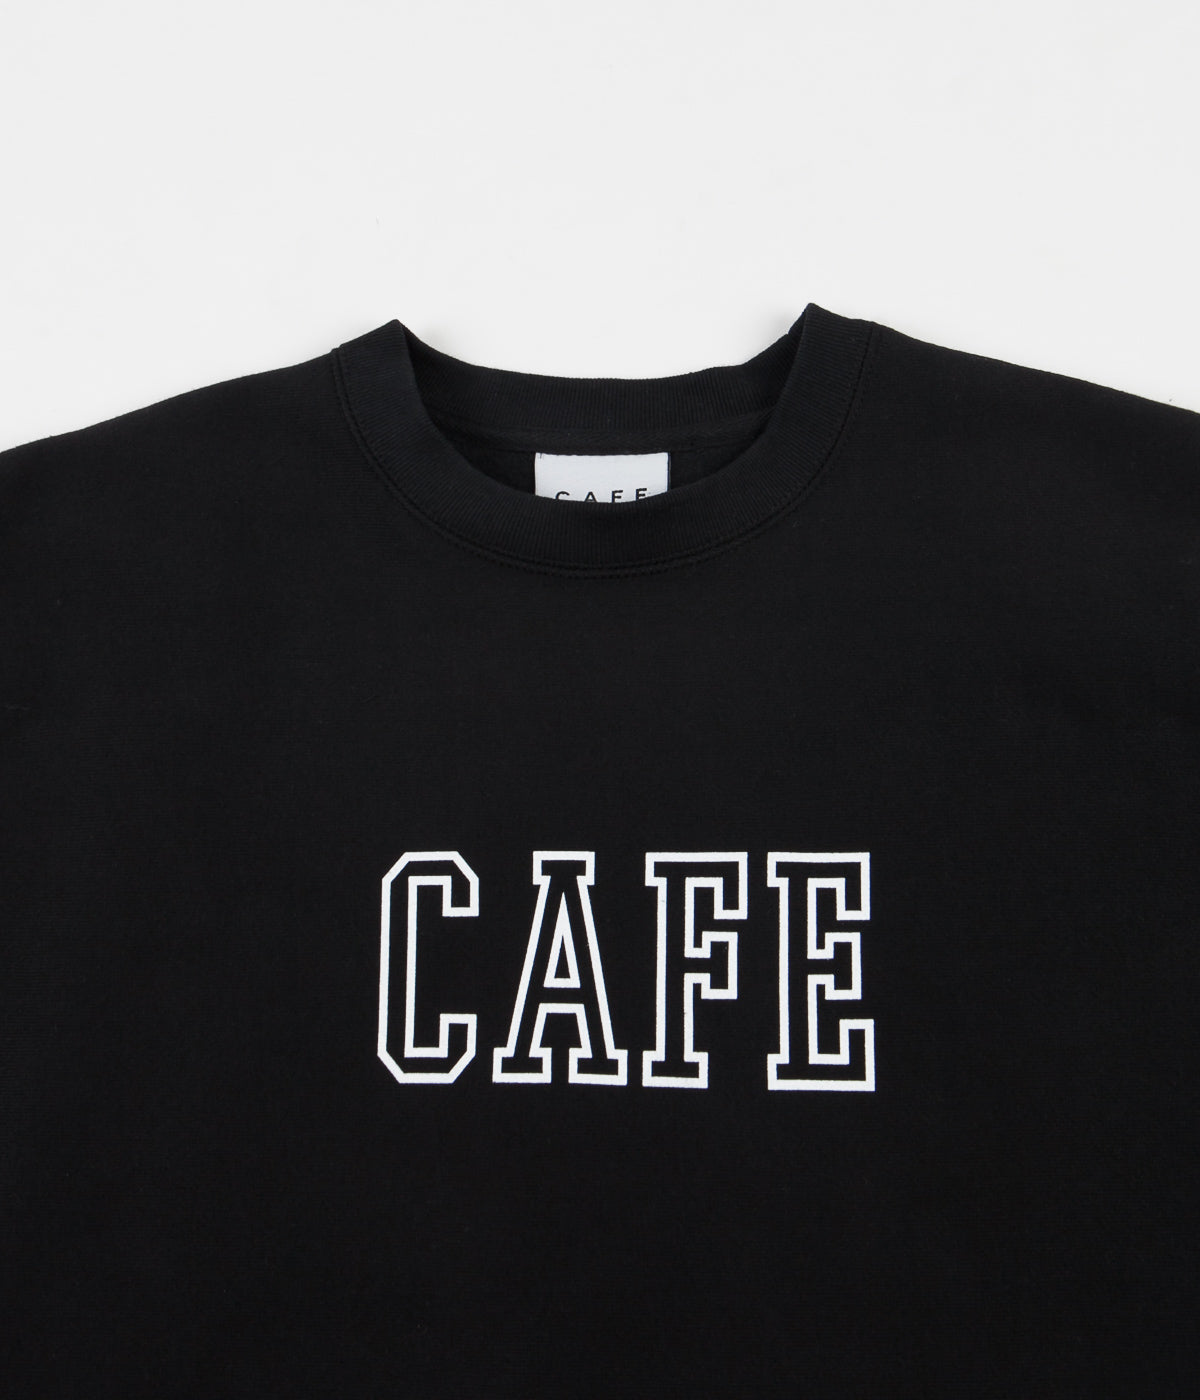 Skateboard Cafe College Heavyweight Oversize Crewneck Sweatshirt - Black